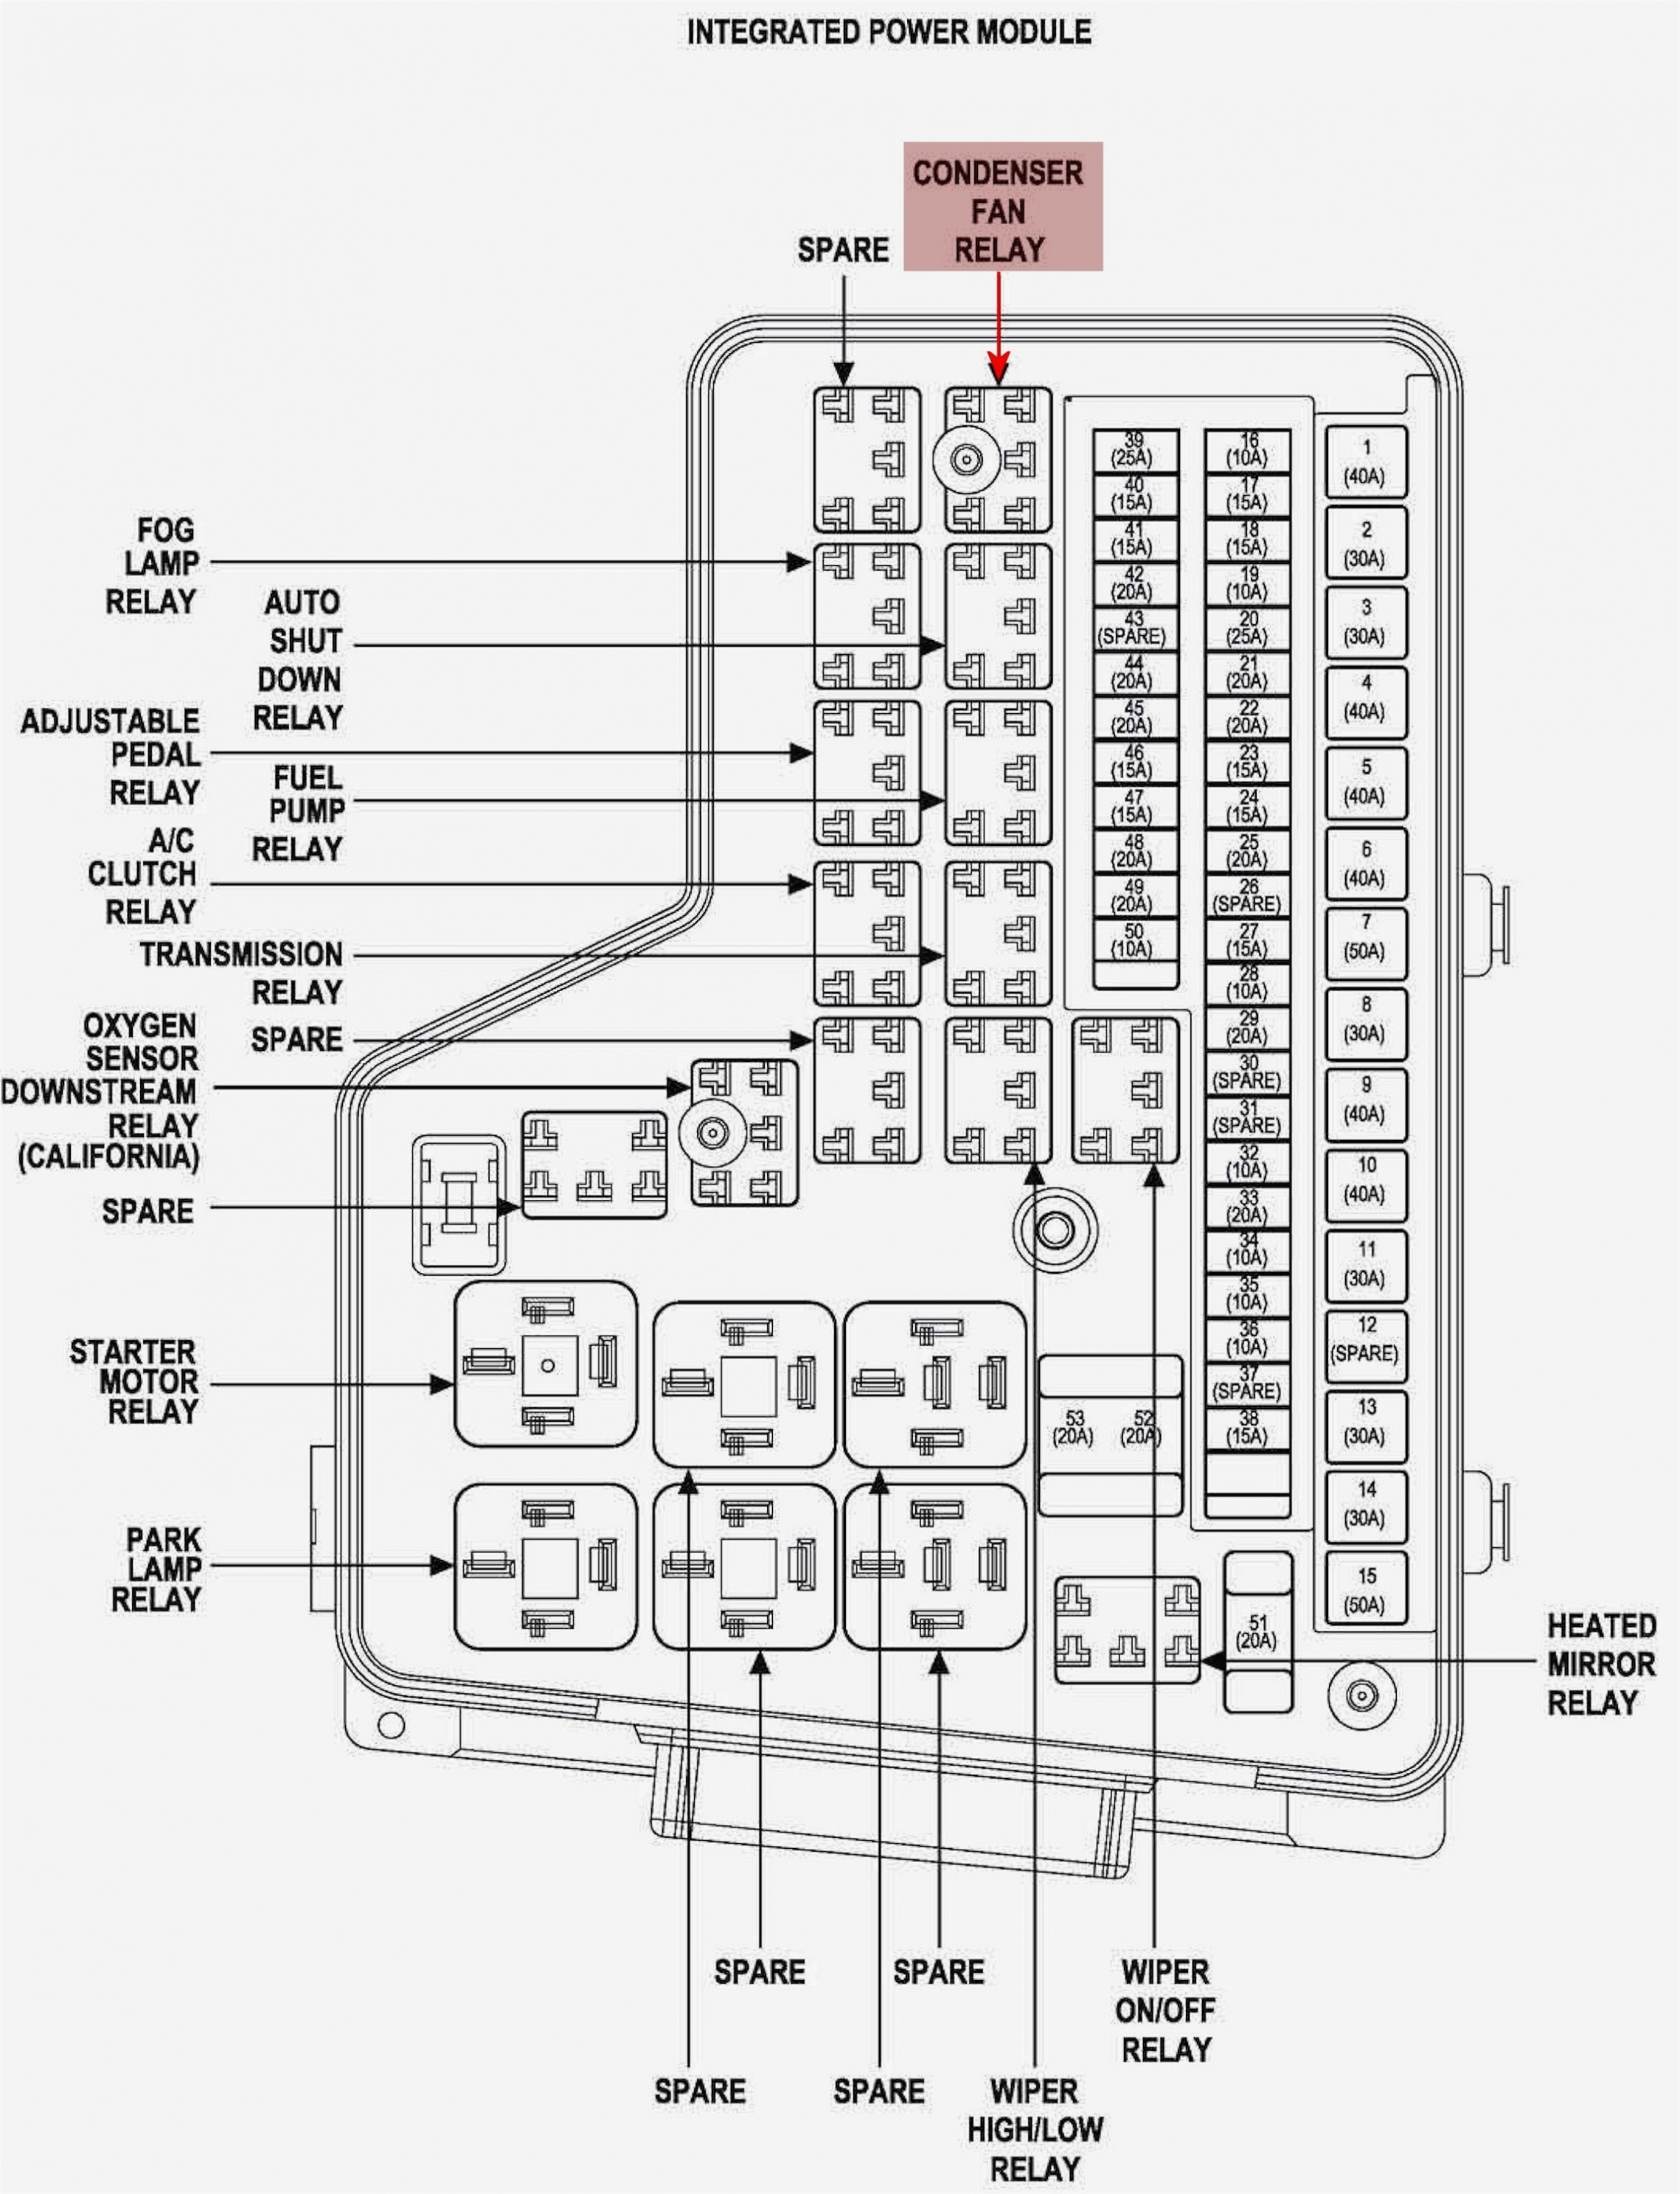 DIAGRAM] 1997 Dodge Ram 3500 Fuse Diagram FULL Version HD Quality Fuse  Diagram - INDUSELECTRICAL.EASYCOMUNICAZIONE.ITeasycomunicazione.it